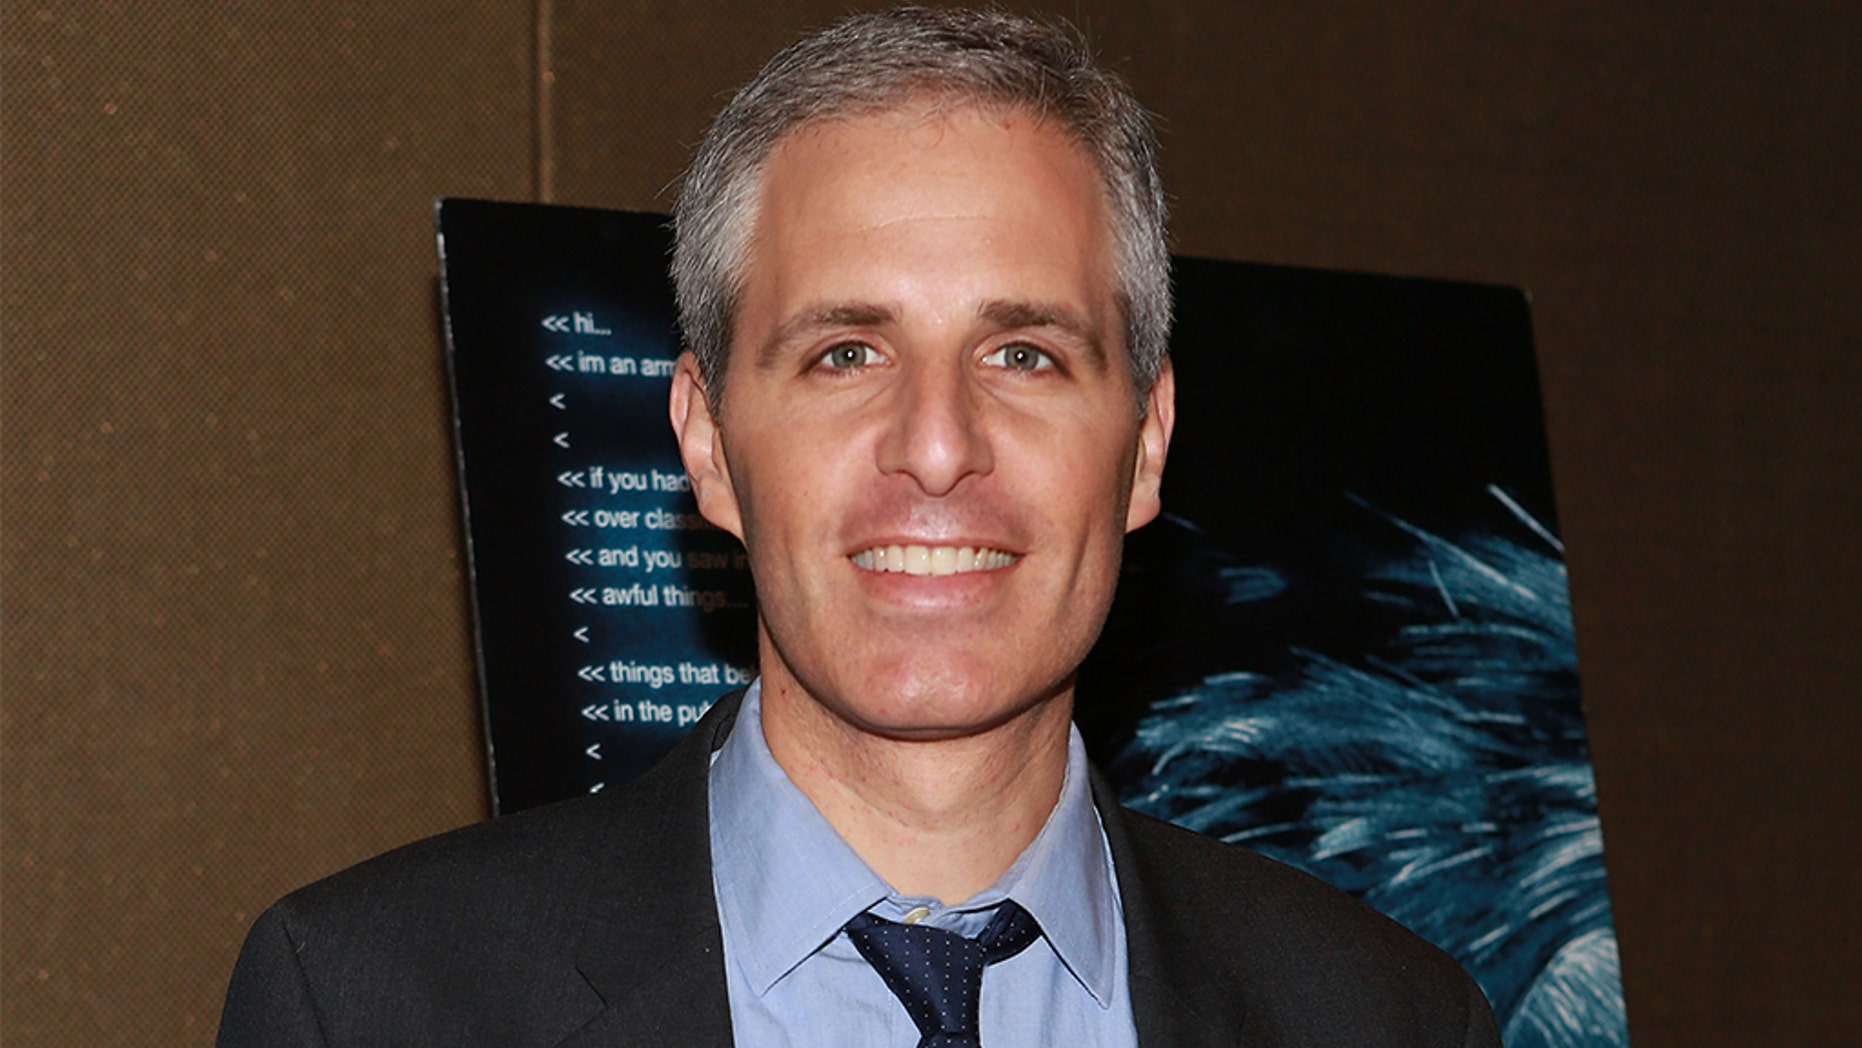 David Sirota, seen in 2013, was formally brought into Sanders' campaign on Tuesday. (Getty Images)